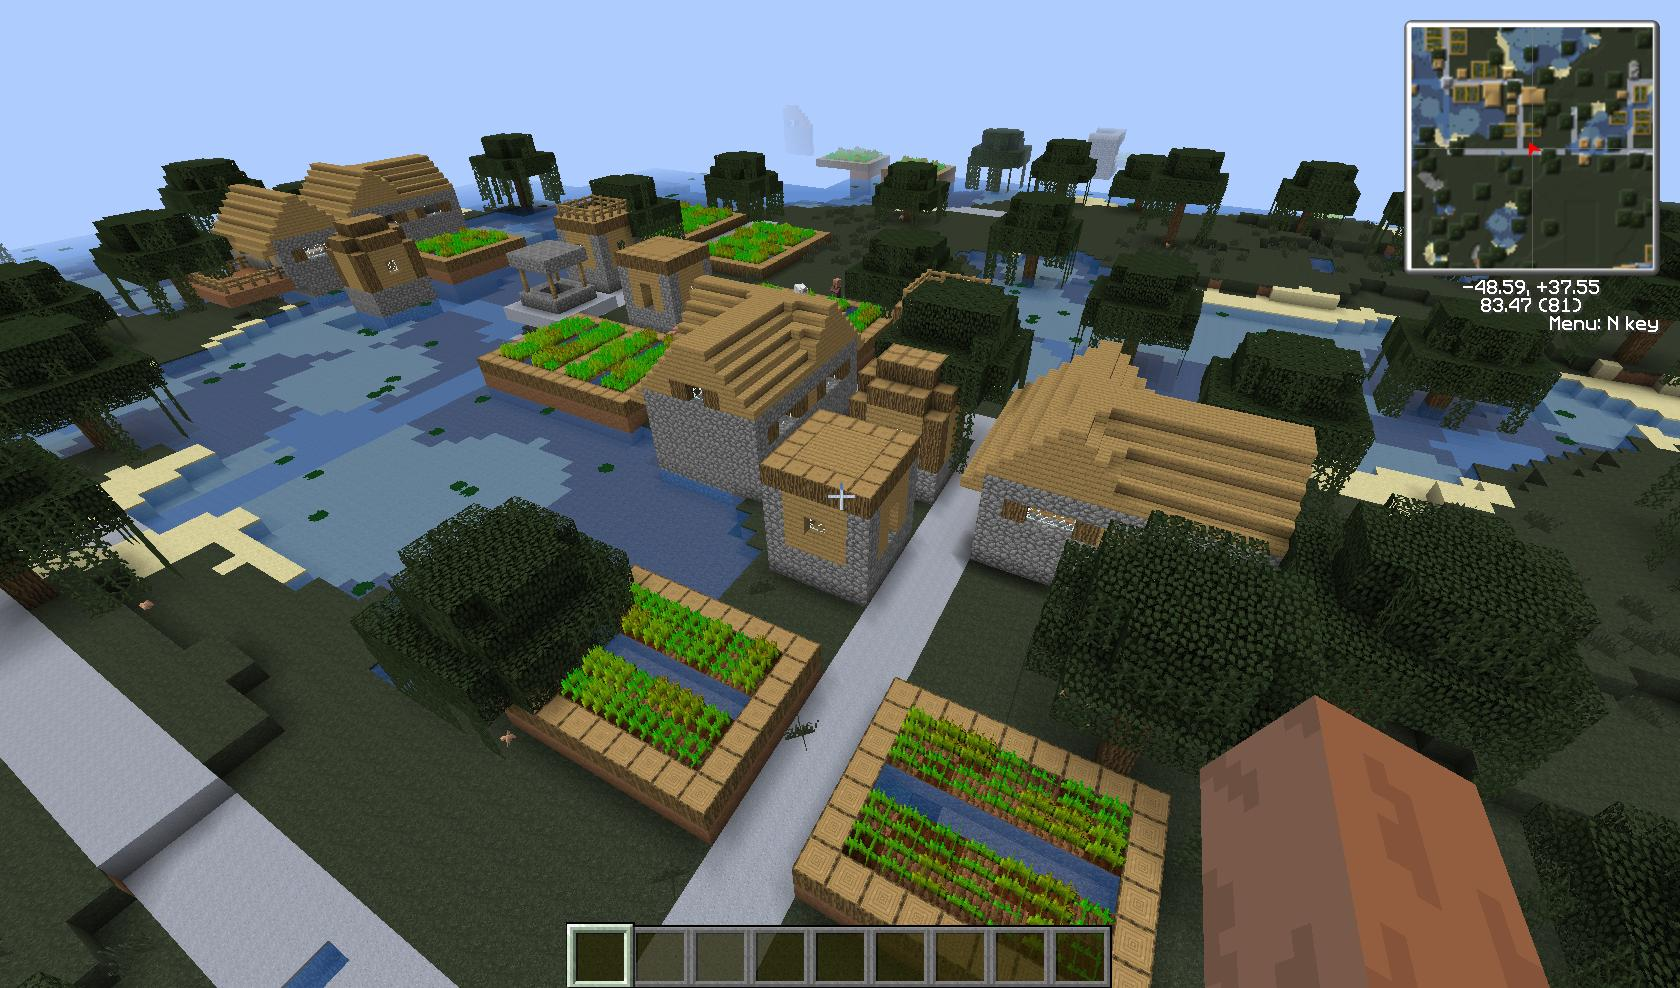 77c4b  More Village Biomes Mod 2 [1.6.1] More Village Biomes Mod Download